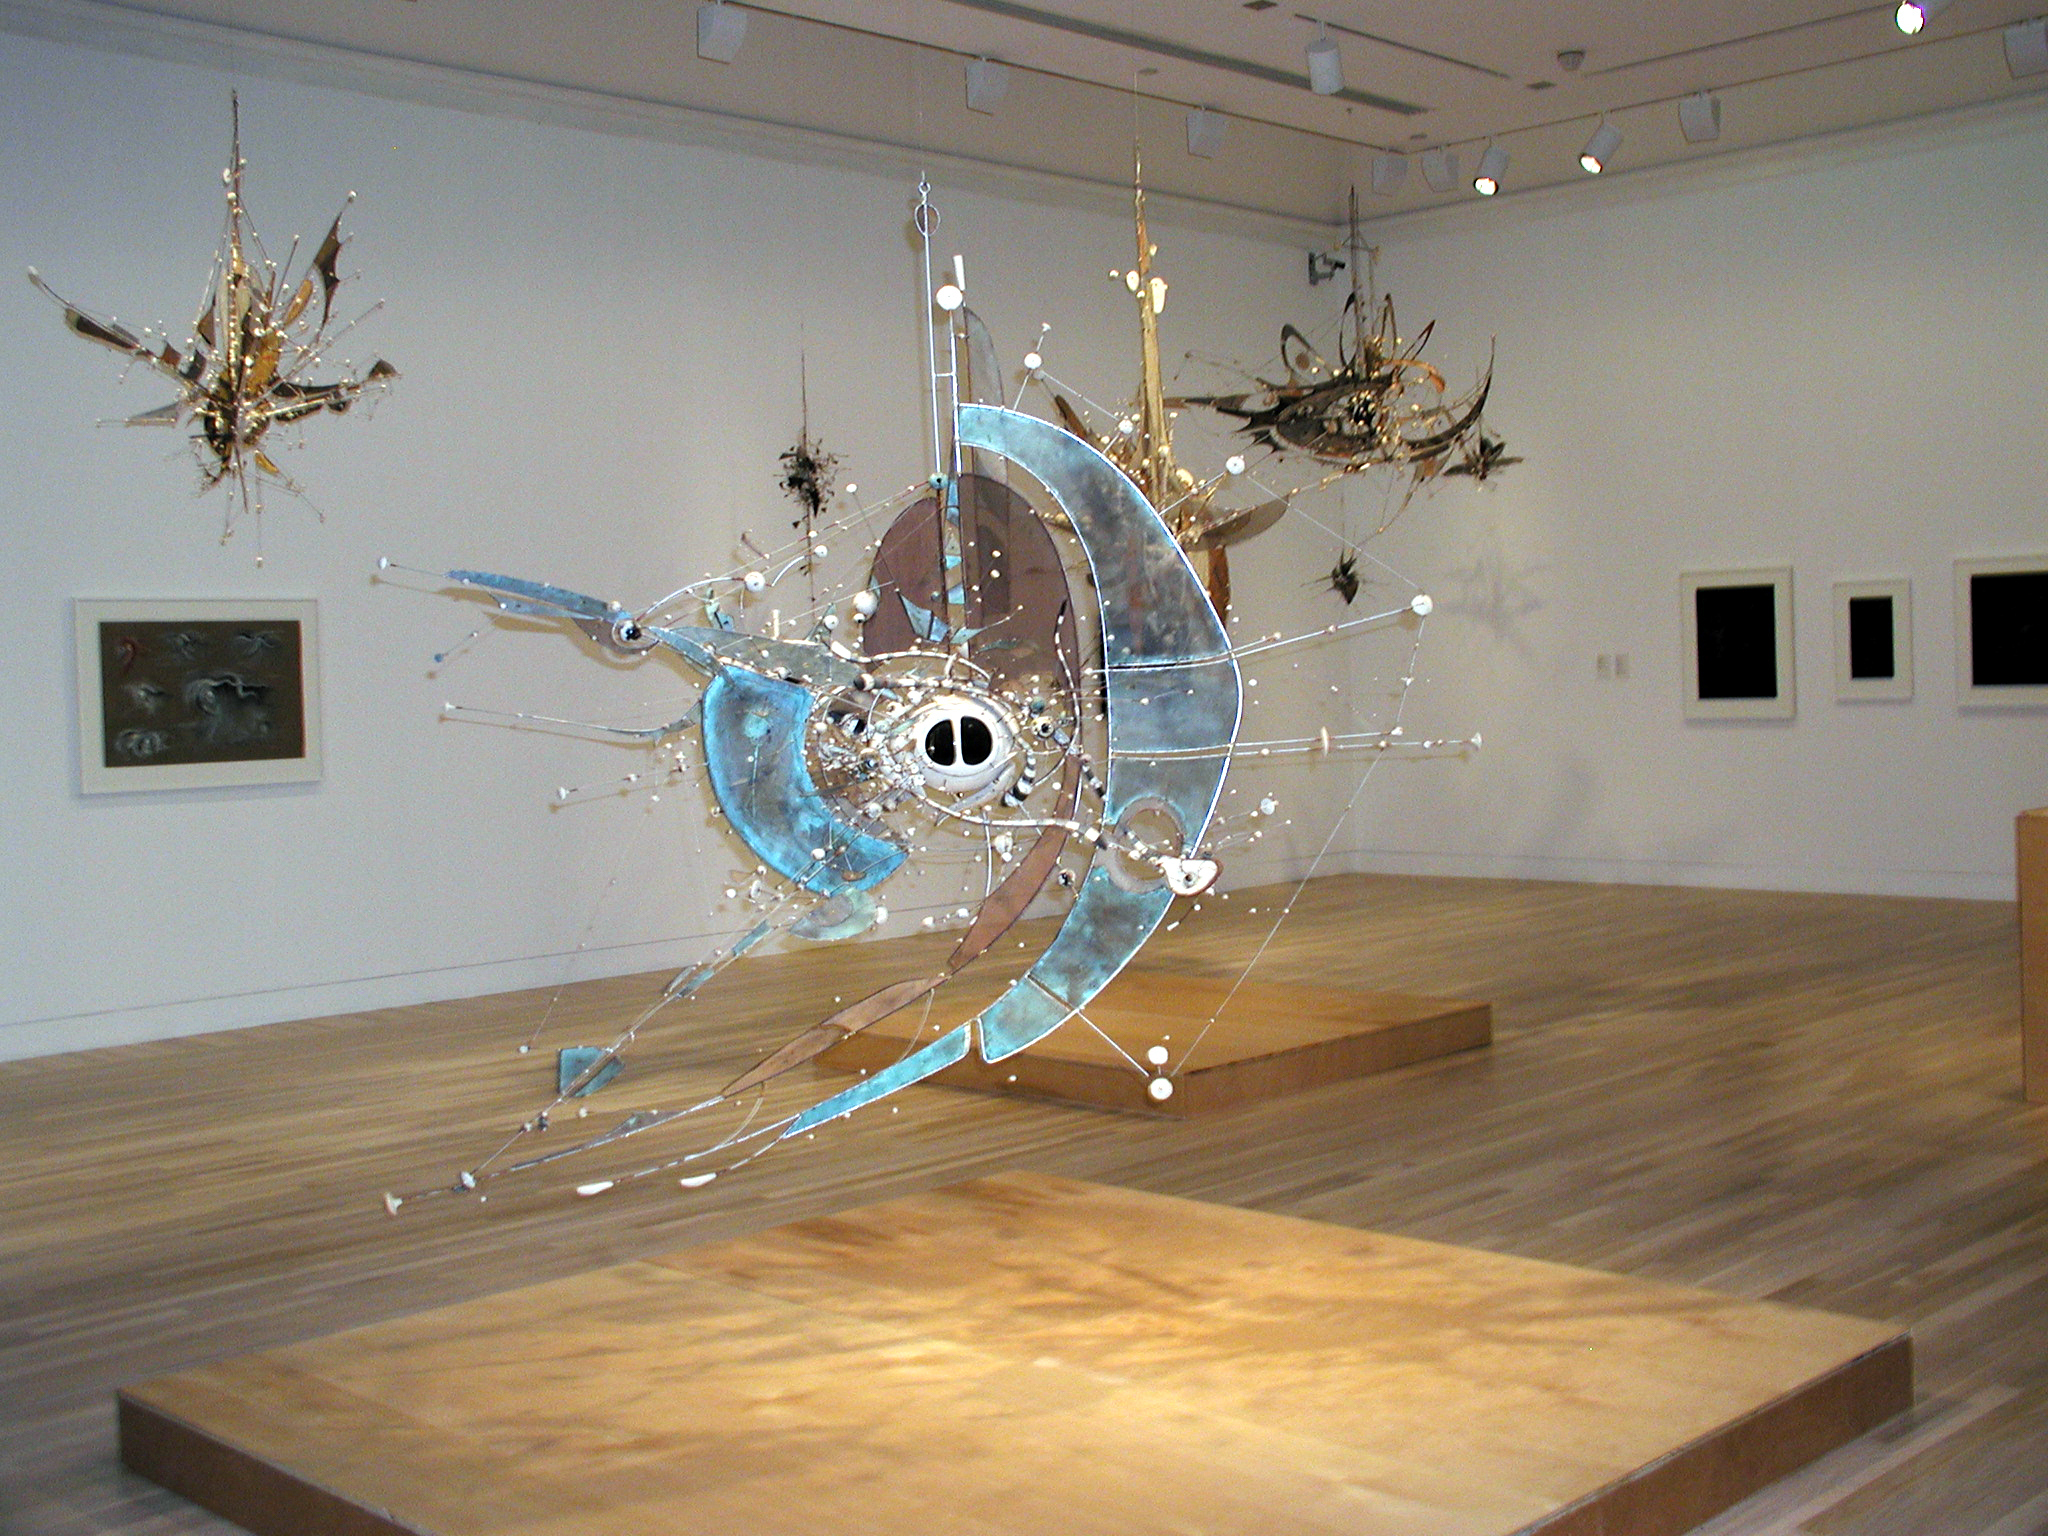 Lee Bontecou: A Retrospective. Installation view at Hammer Museum, Los Angeles. October 5, 2003-January 11, 2004.